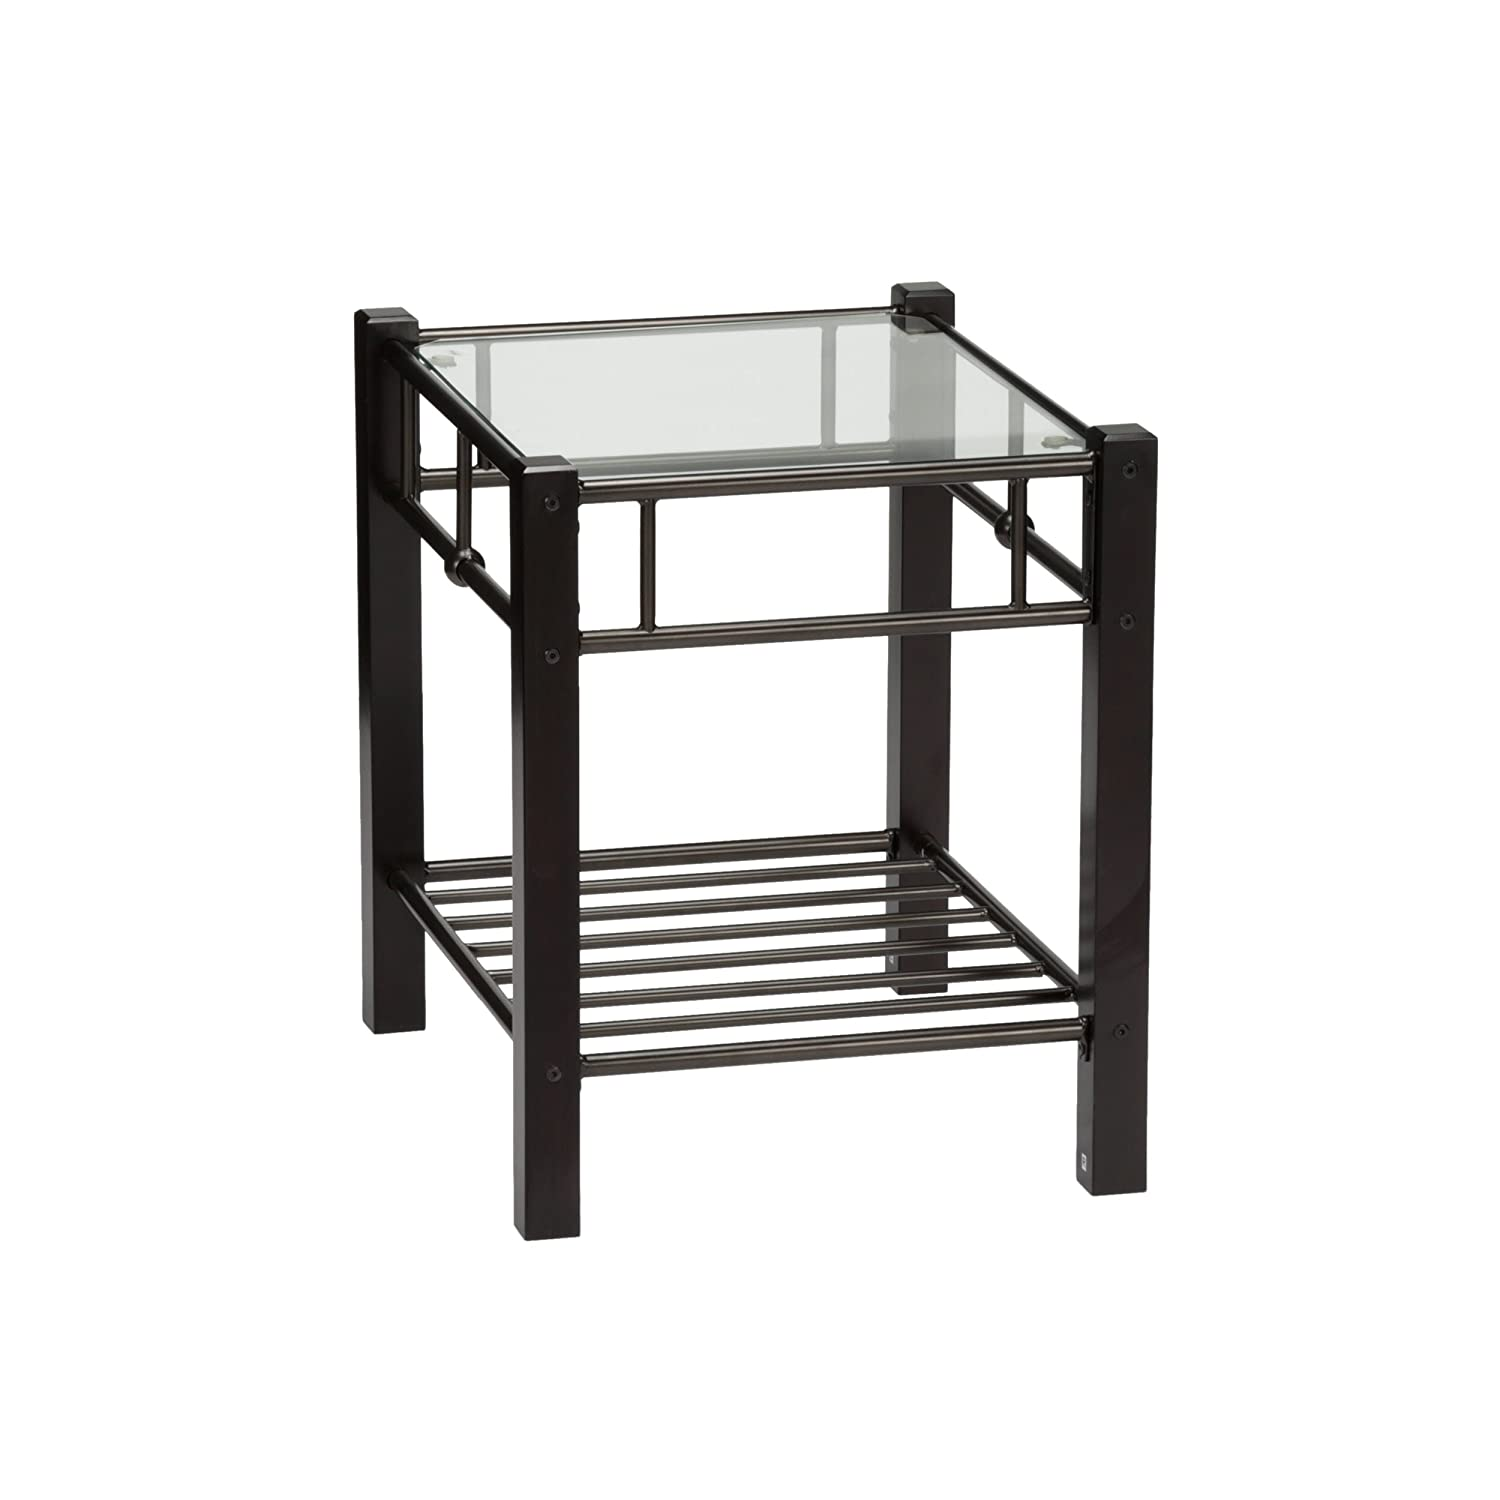 Fashion Bed Group Leggett /& Platt 54901N Scottsdale Metal and Wood Nightstand with Glass Surface Black Speckle Finish Twin